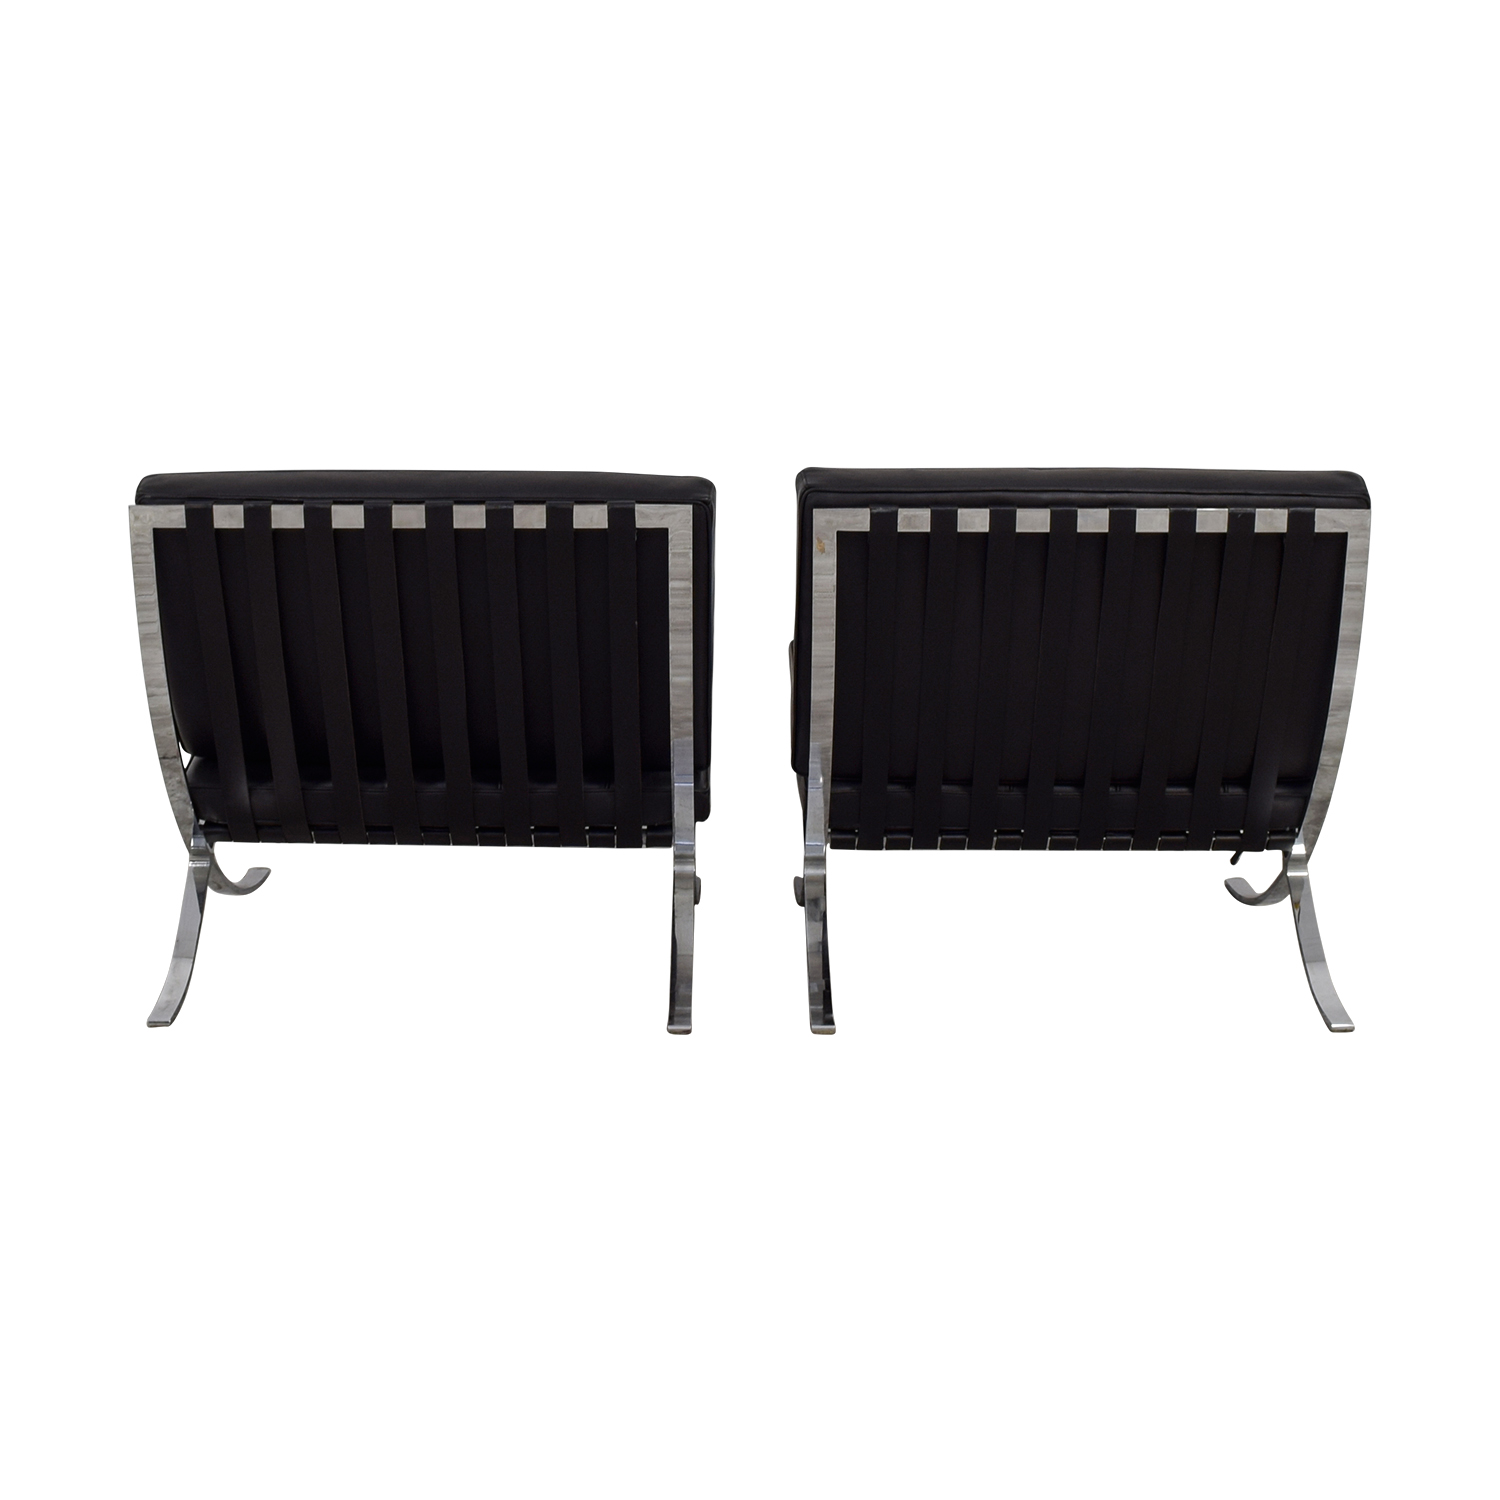 Black and Chrome Tufted Barcelona Style Accent Chairs